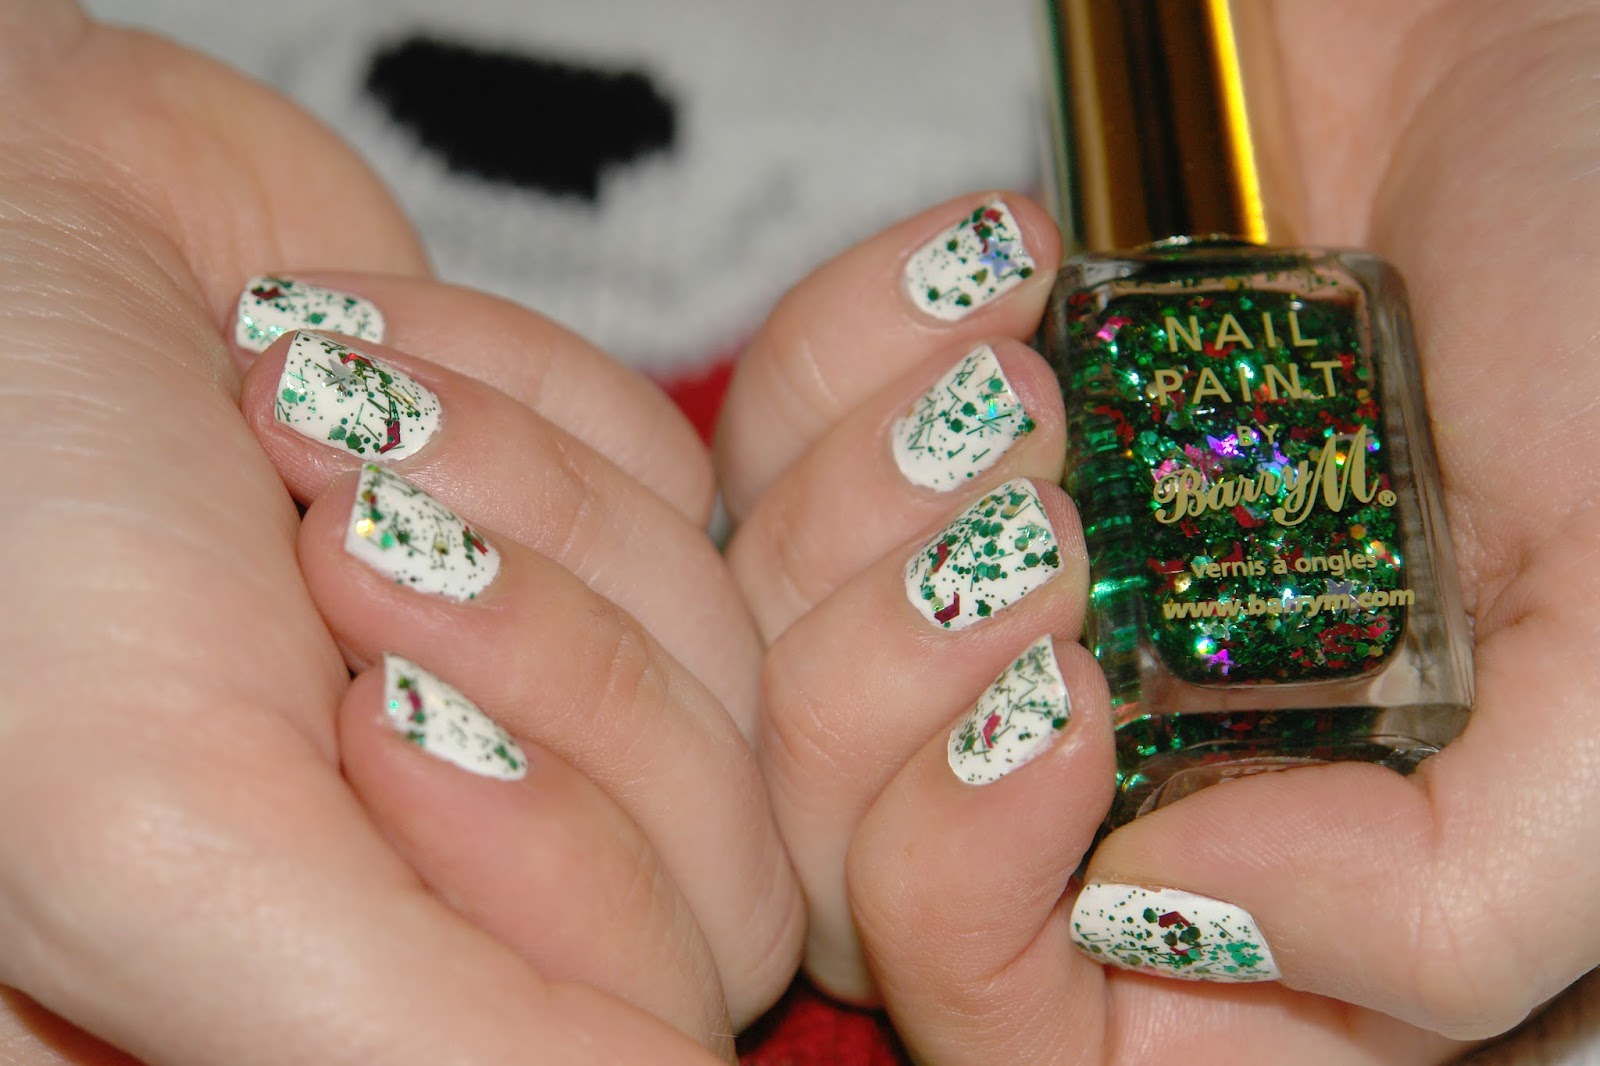 NAILS: Christmas edition, Barry M, nail polish, nails, NOTD, Christmas, glitter, Barry M Christmas Tree, swatches, beauty blogger